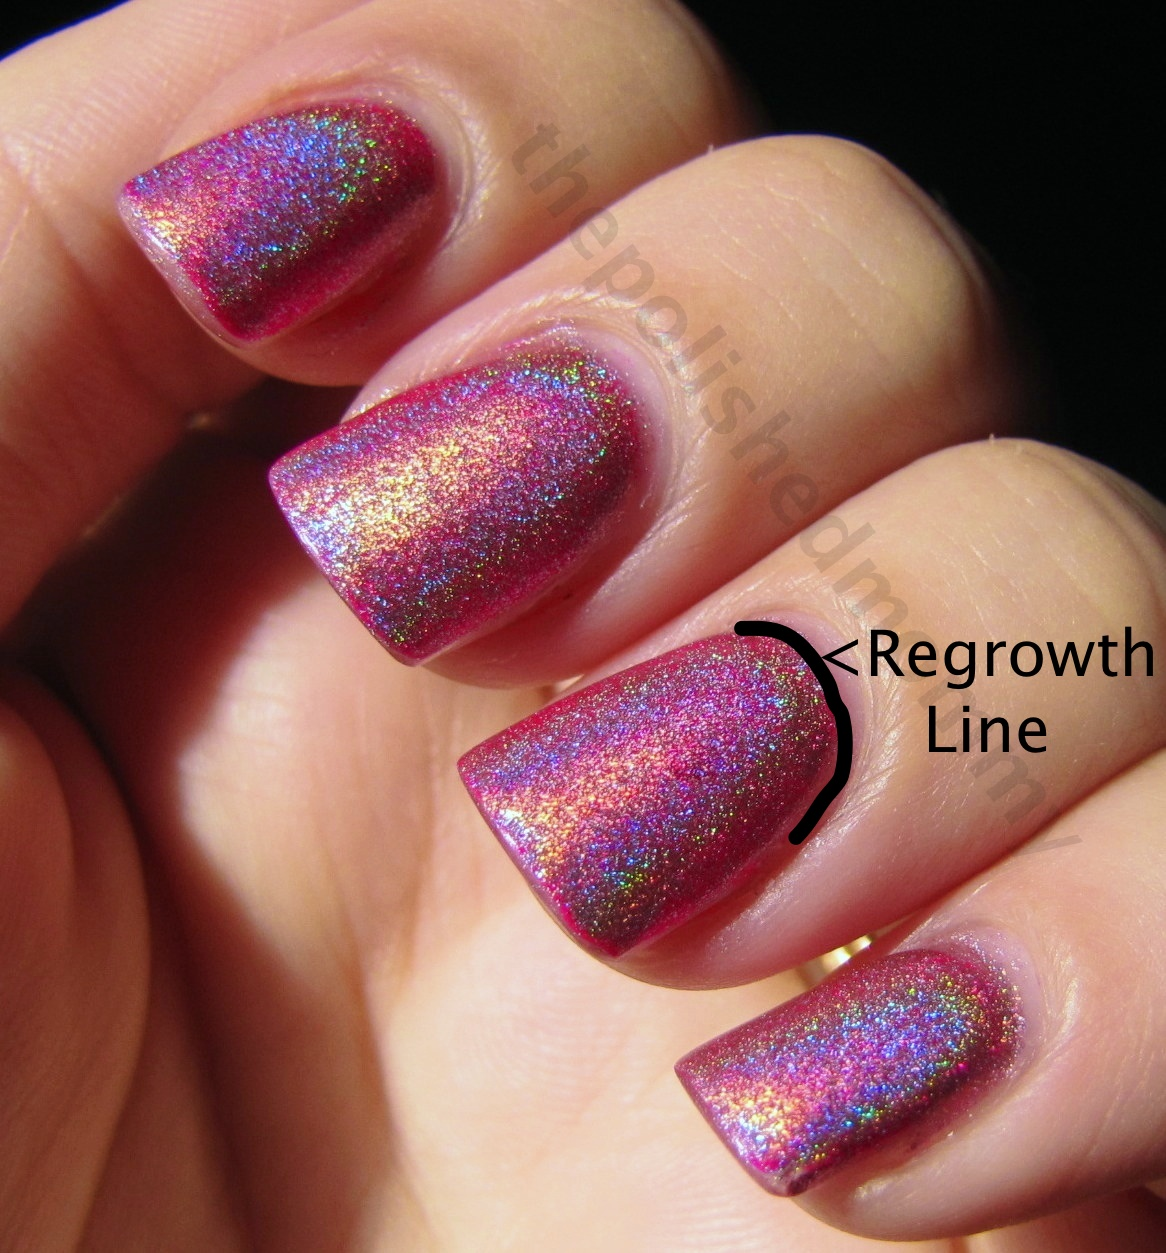 Using A Super Fine File Or Grit Buffer Gently Buff The Regrowth Line So It Blends Into Natural Nail